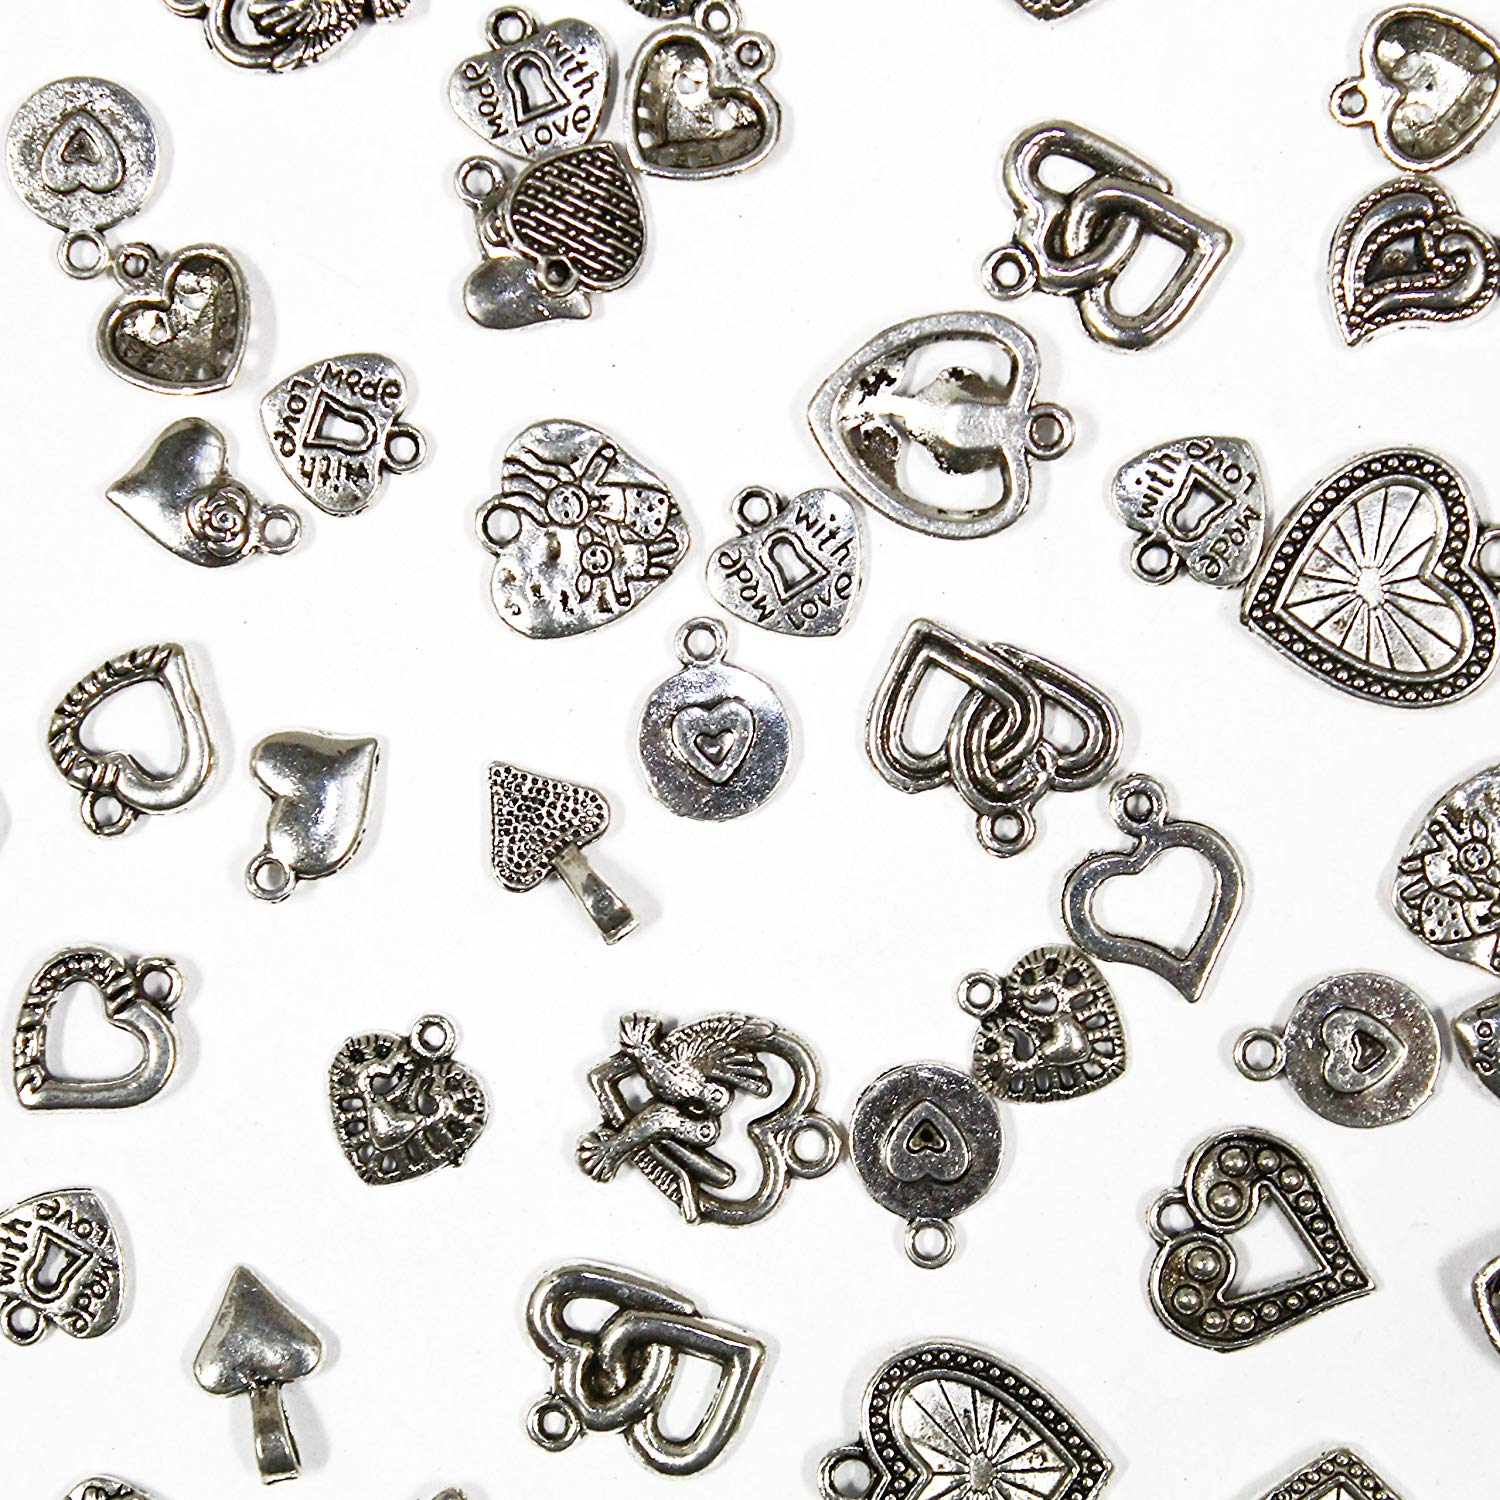 25 pcs Mixed antique Silver Hearts , Charms and Pendants